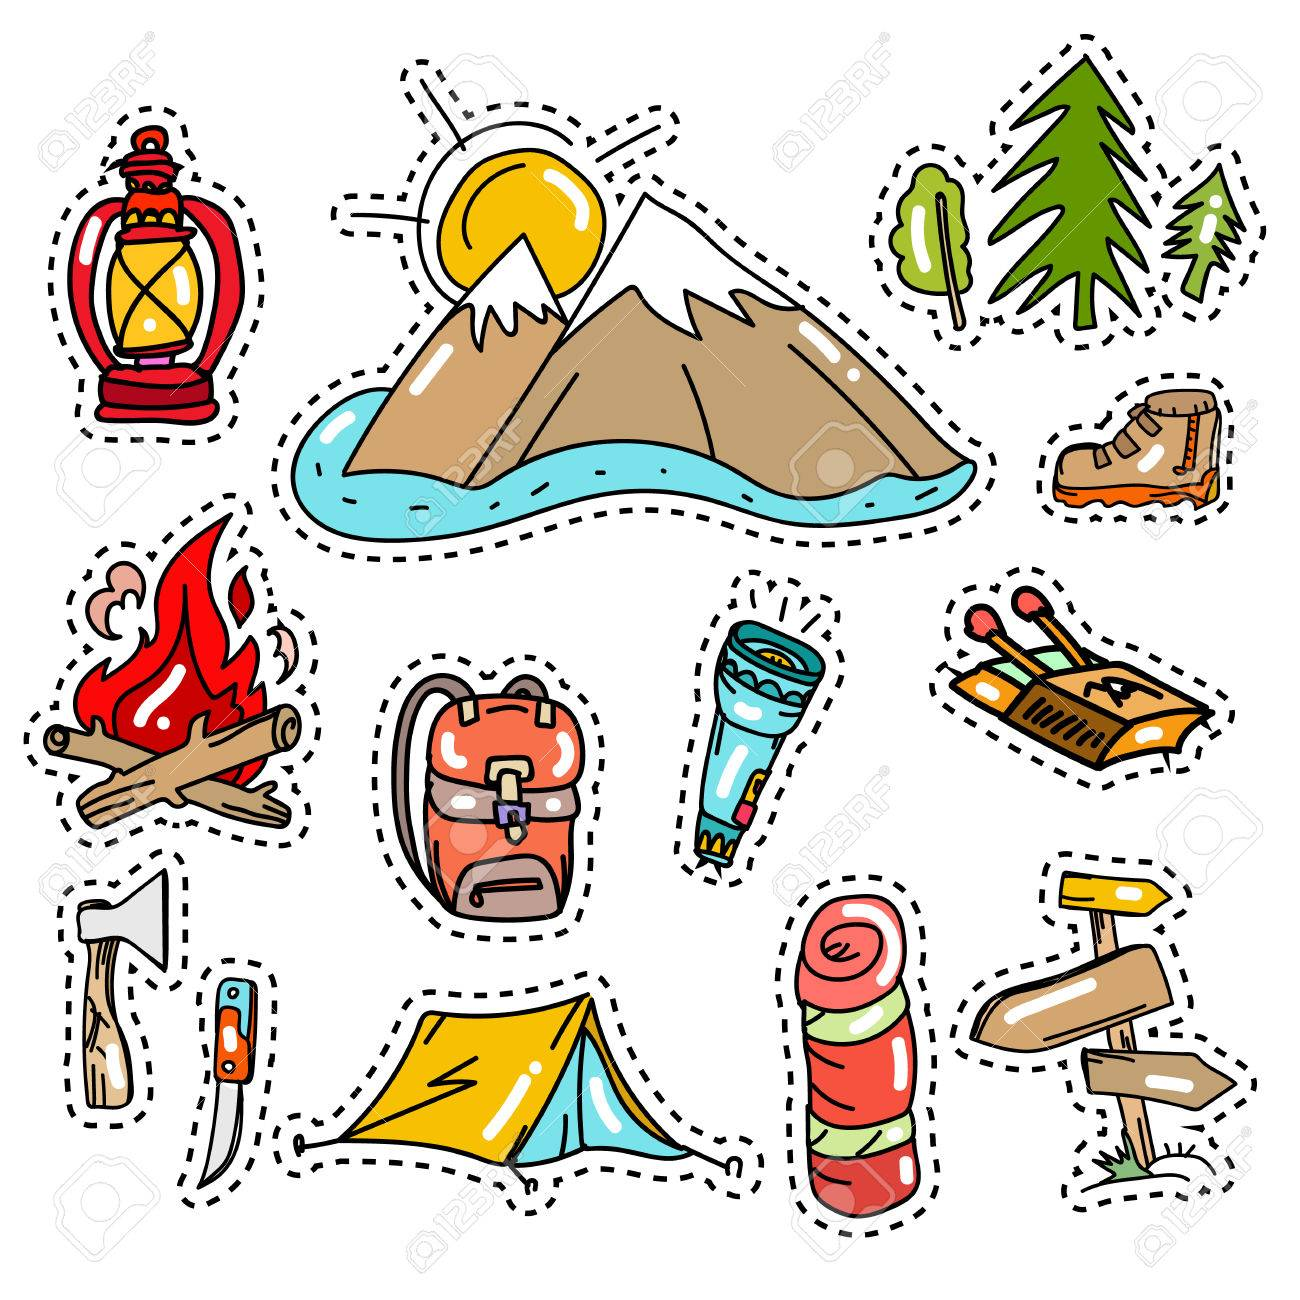 Camping vector elements camping stickers pop art style tourism equipment symbols and icons